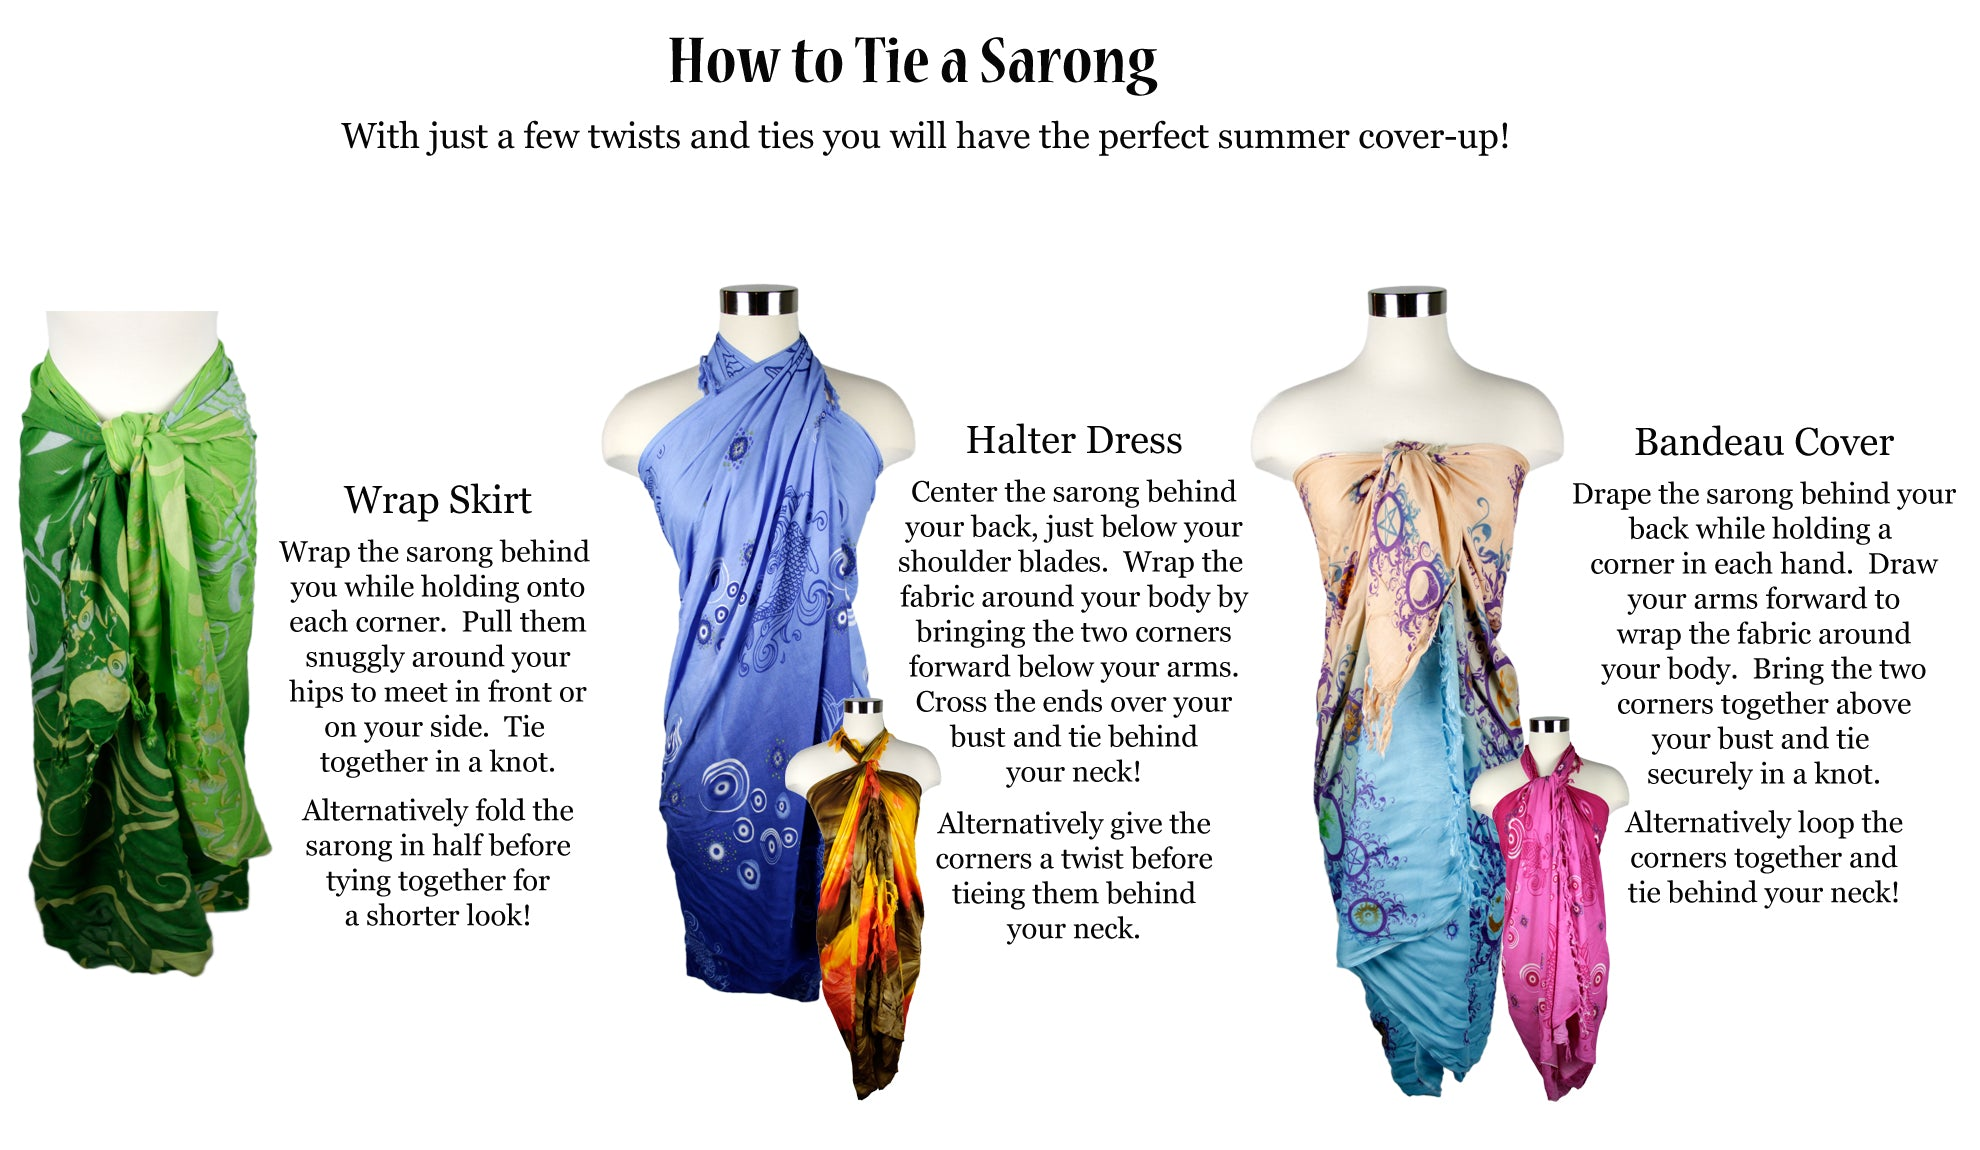 How to tie a sarong in 5 different ways.